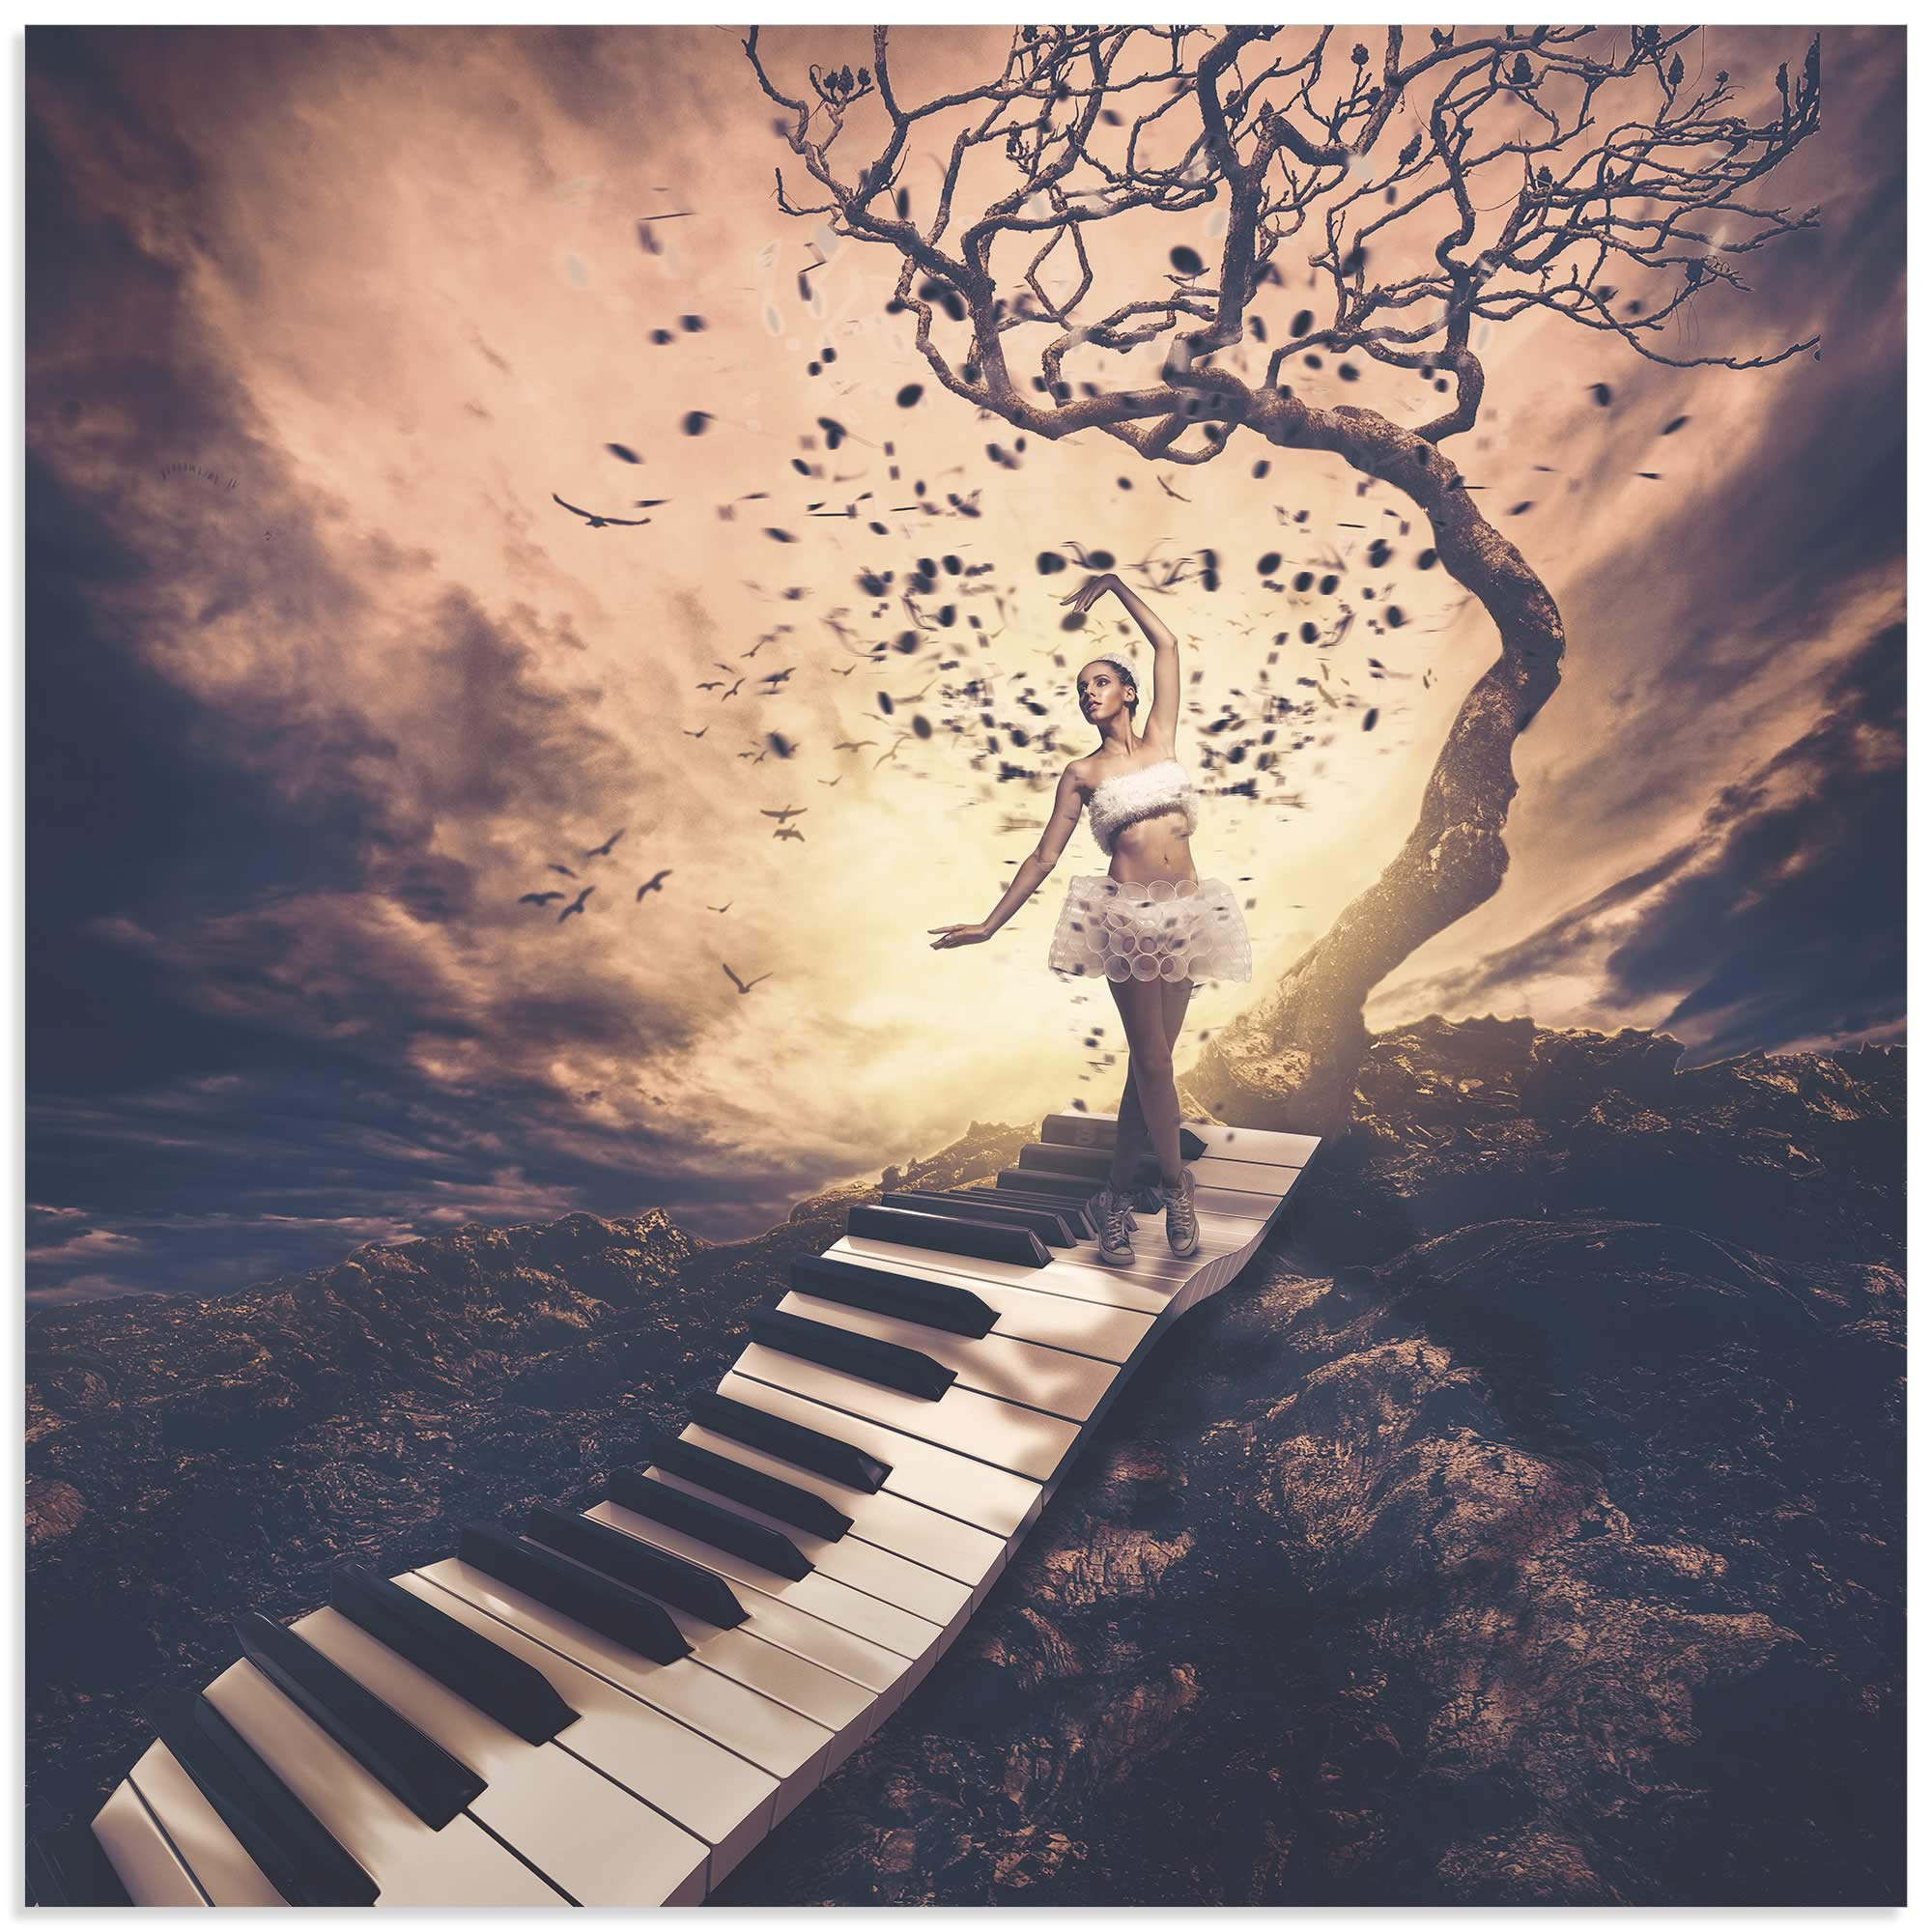 music rhapsody piano carvalho jackson surrealism fantasy artwork metal acrylic landscape keyboard artist studio ballerina moderncrowd